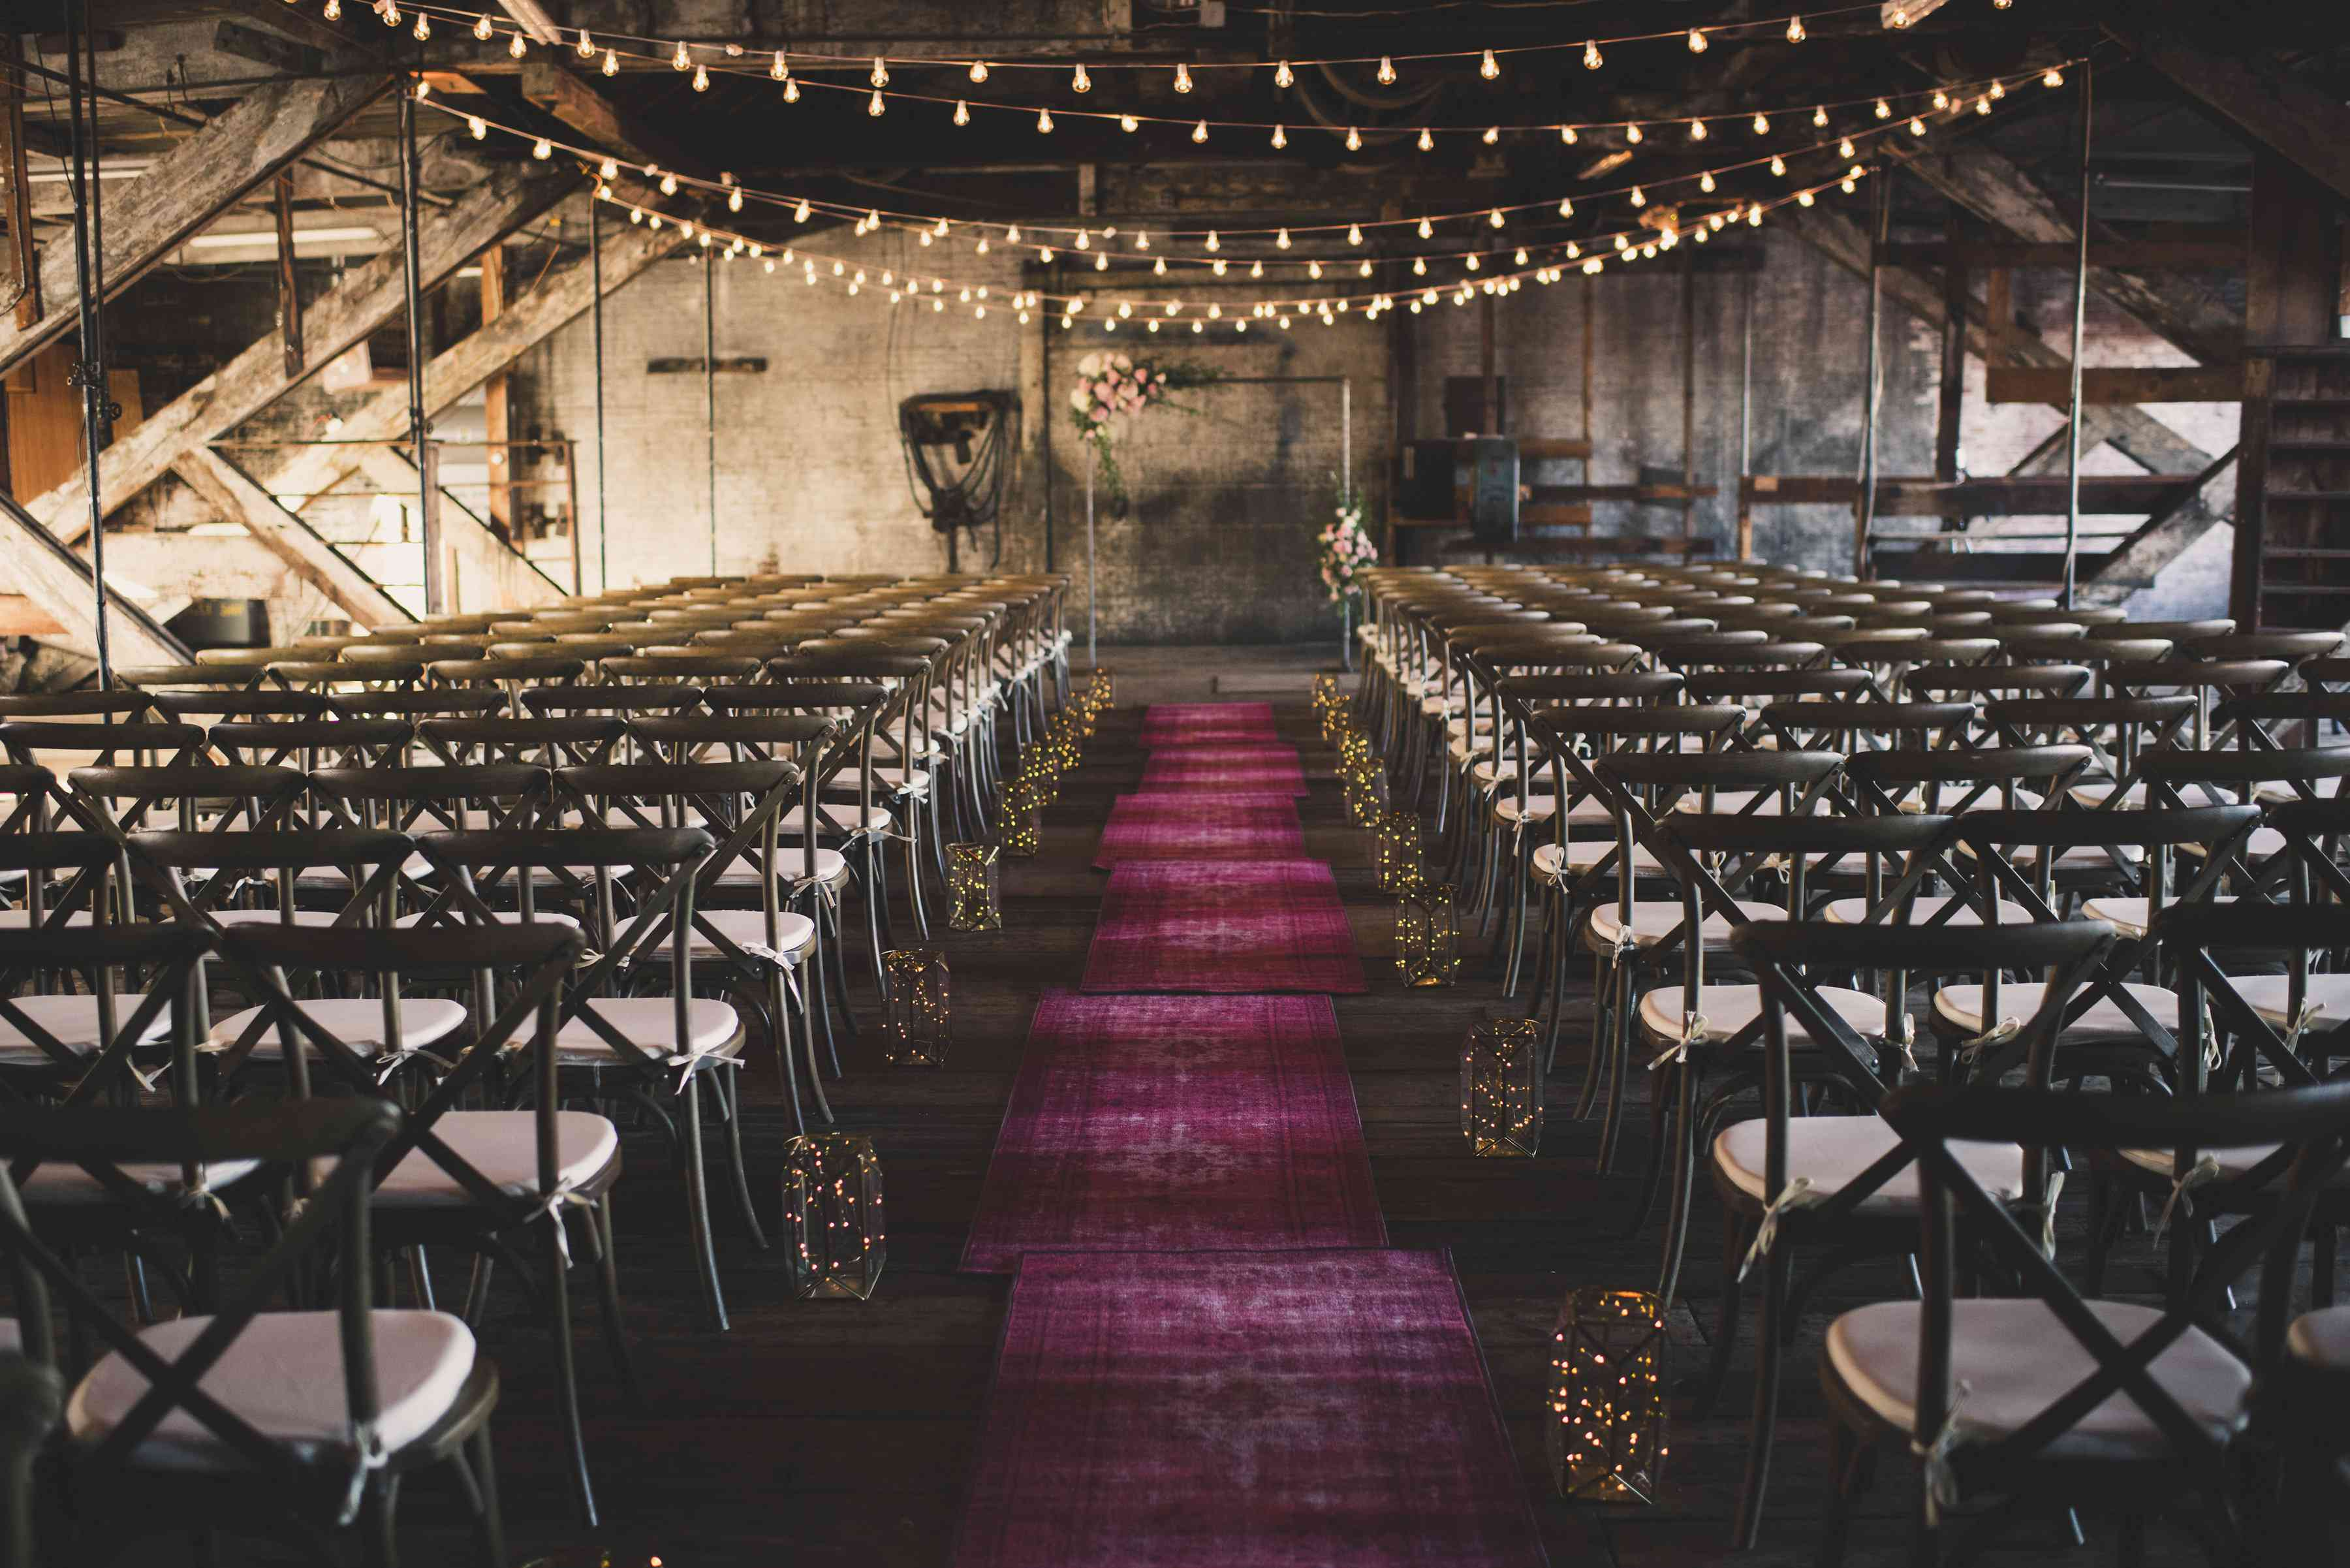 Indoor wedding aisle with red rugs as a runner, lined with jars of fairy lights